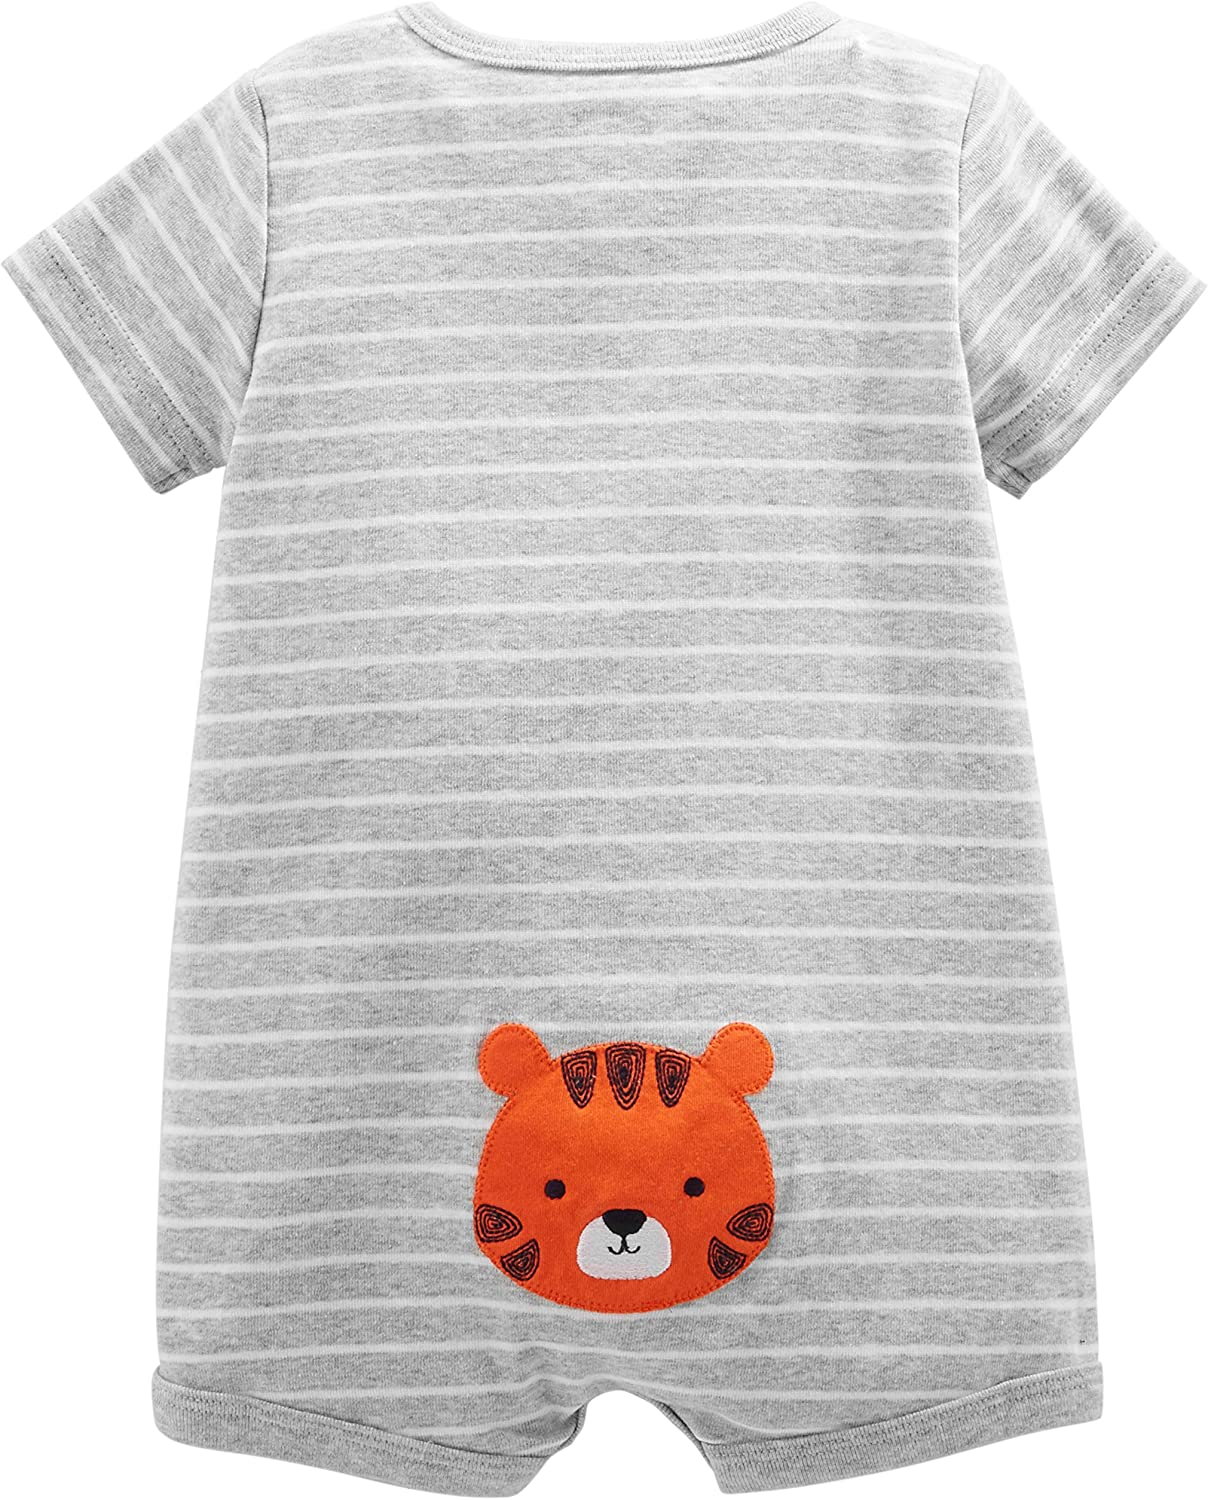 Pacco da 3 Simple Joys by Carters 3-Pack Snap-up Rompers Bimbo 0-24